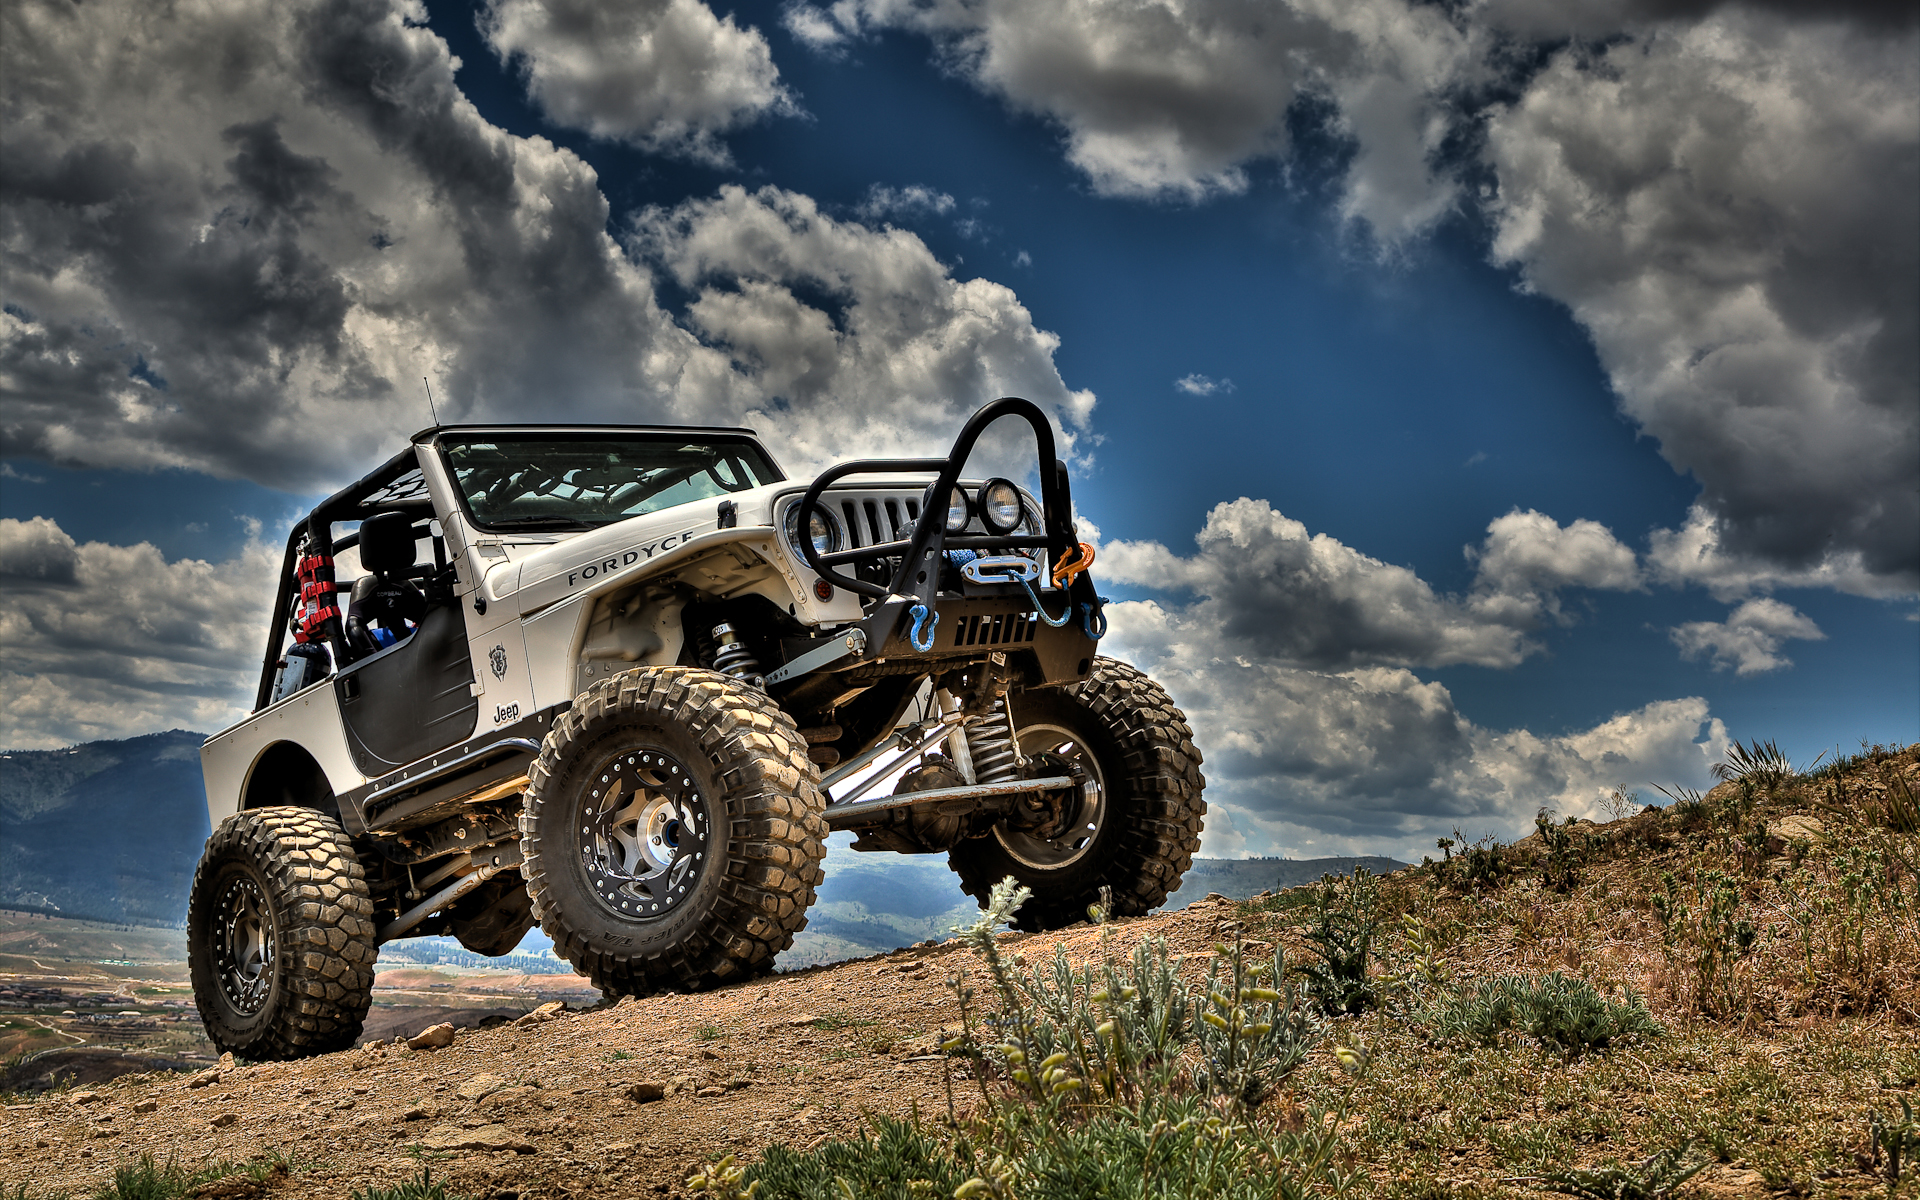 Off Road Jeep Hd Wallpaper >> Off Road Wallpaper Desktop - WallpaperSafari